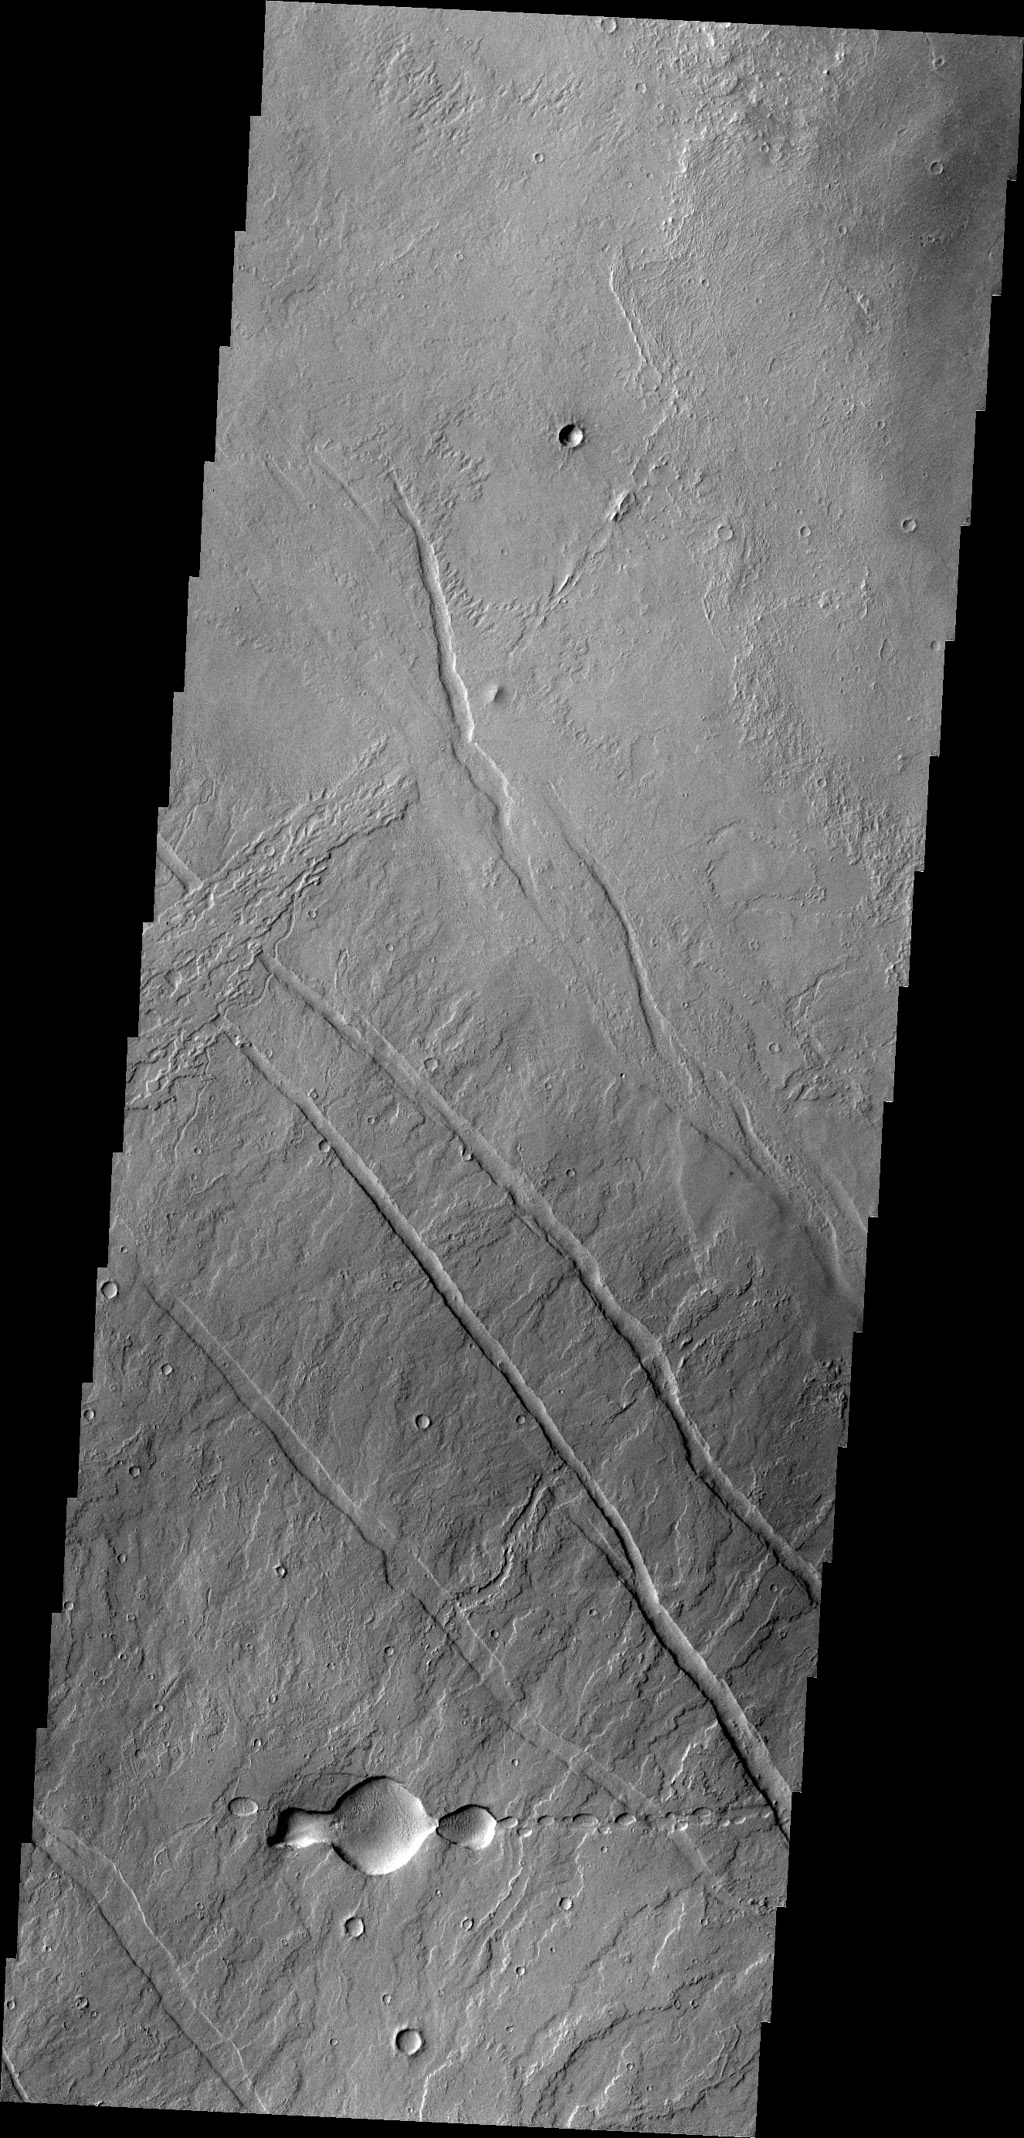 This image from NASA's 2001 Mars Odyssey spacecraft of the Tharsis region illustrates relative age relations. Fractures occurred in old lava flows and then younger lava flows covered the fractures.